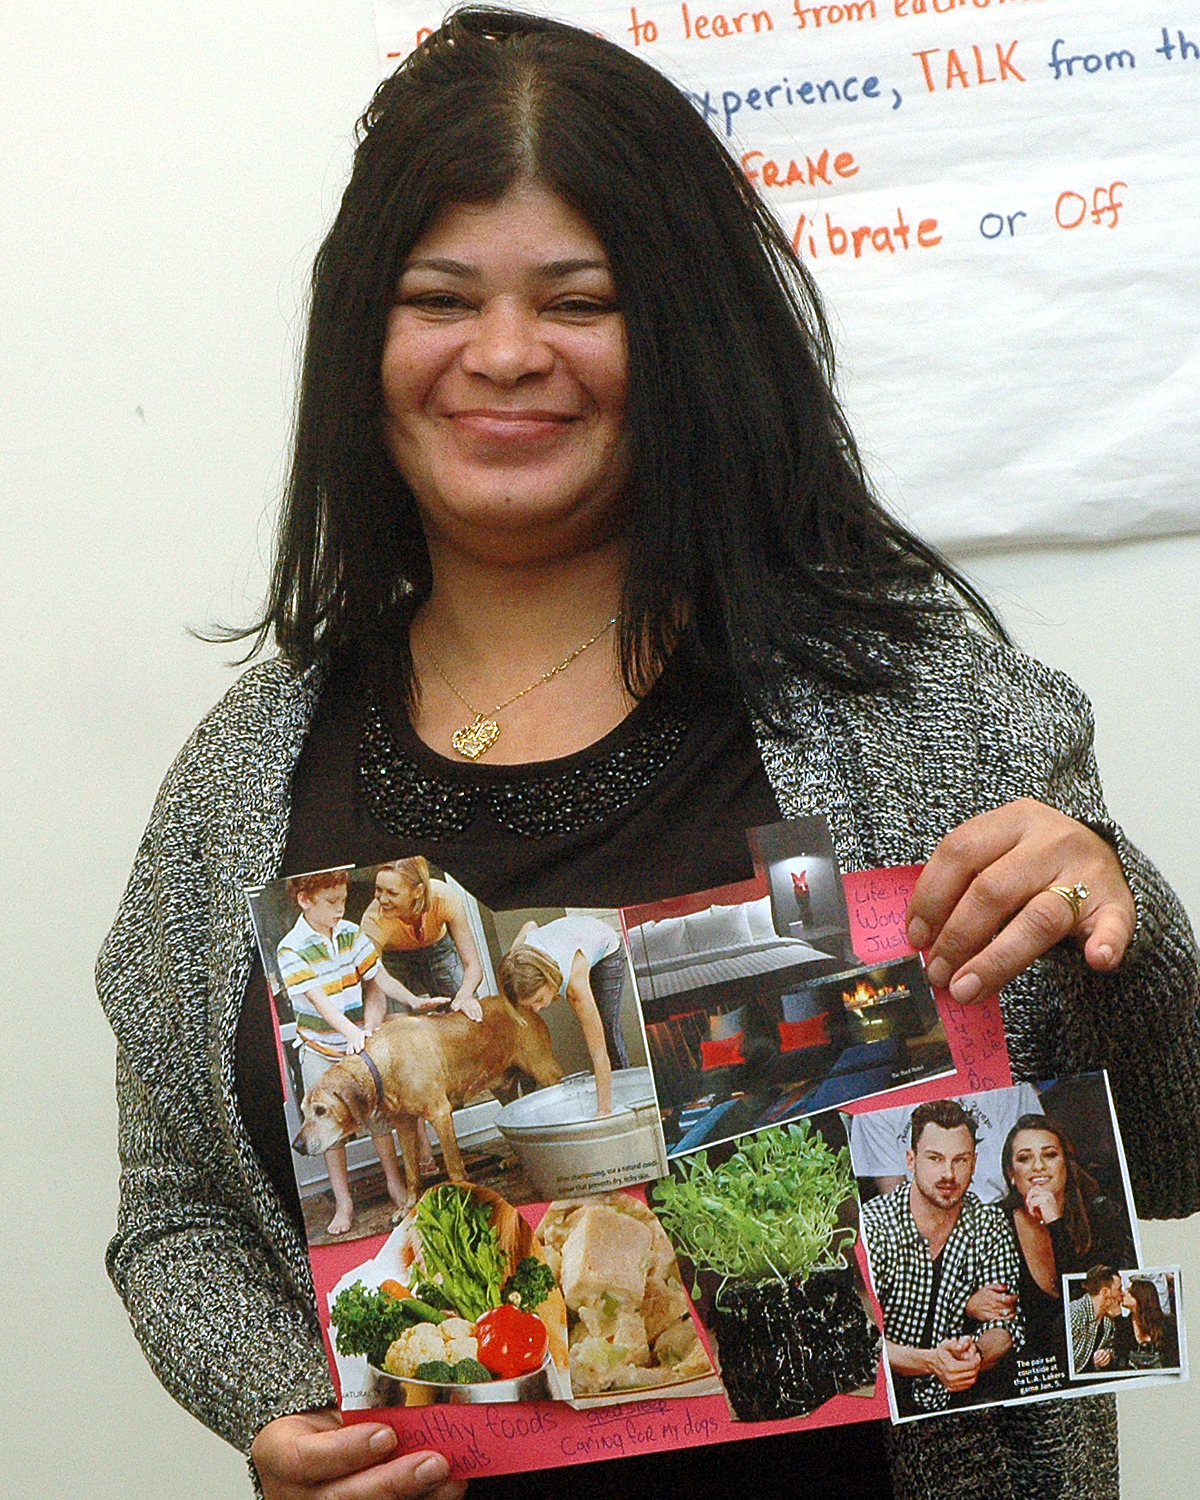 Sol C. showing off the collage that she made during the training